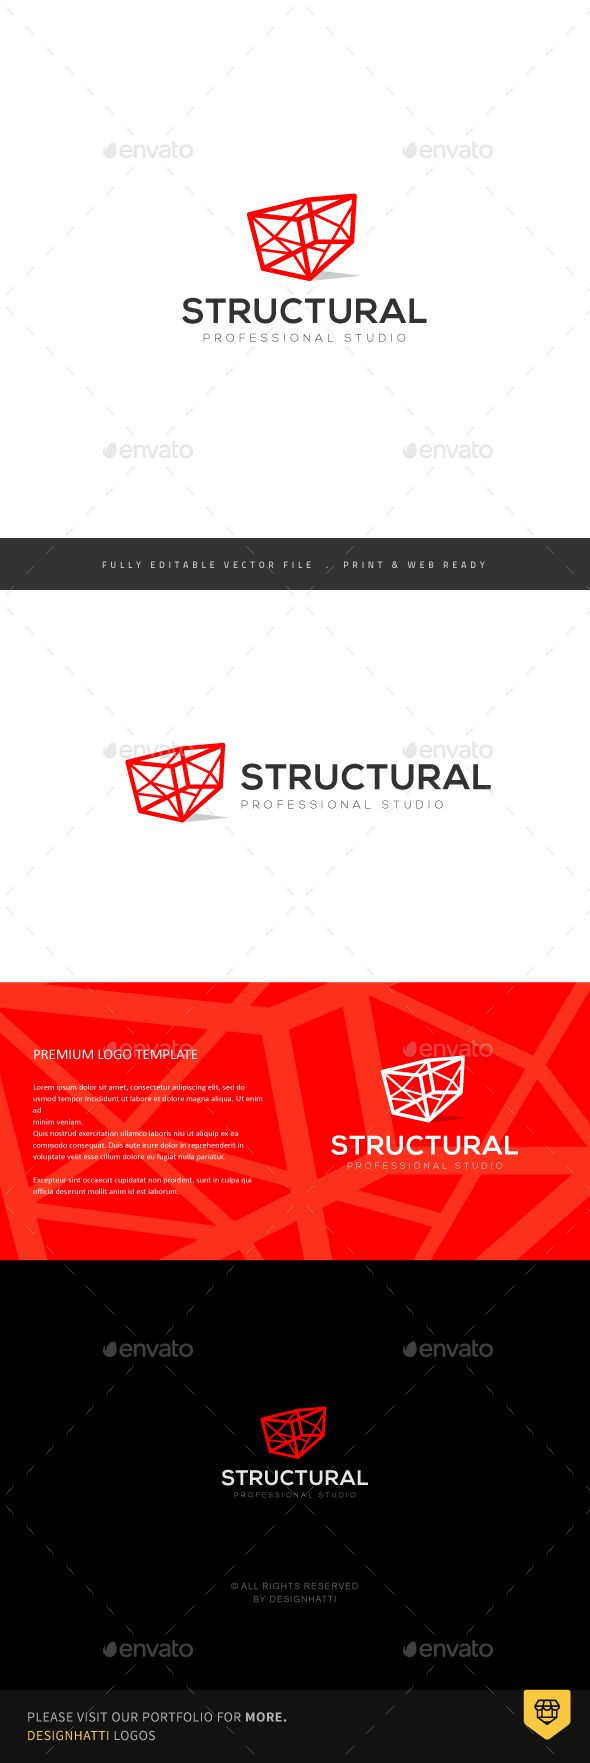 Geometric Structure Logo — Vector EPS #structural design #engineering drawing • Available here → https://graphicriver.net/item/geometric-structure-logo/19261017?ref=pxcr